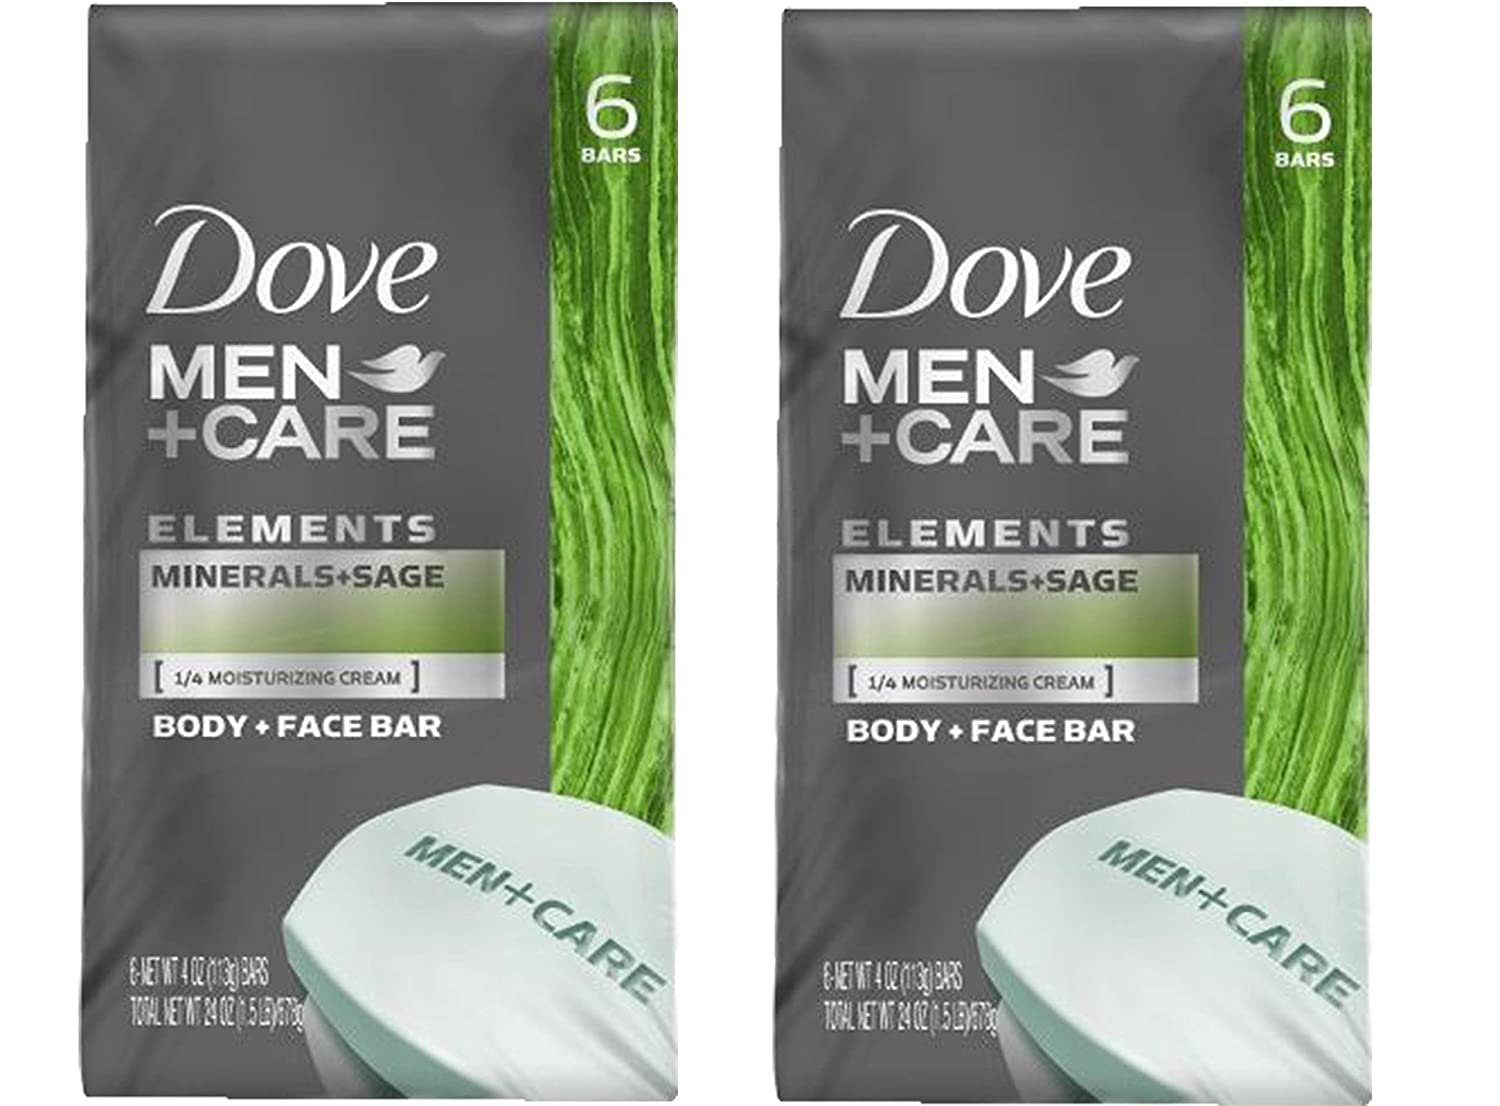 Dove Men+Care Body and Face Bar, Minerals + Sage 4 oz, 6 Bar (Pack of 2)